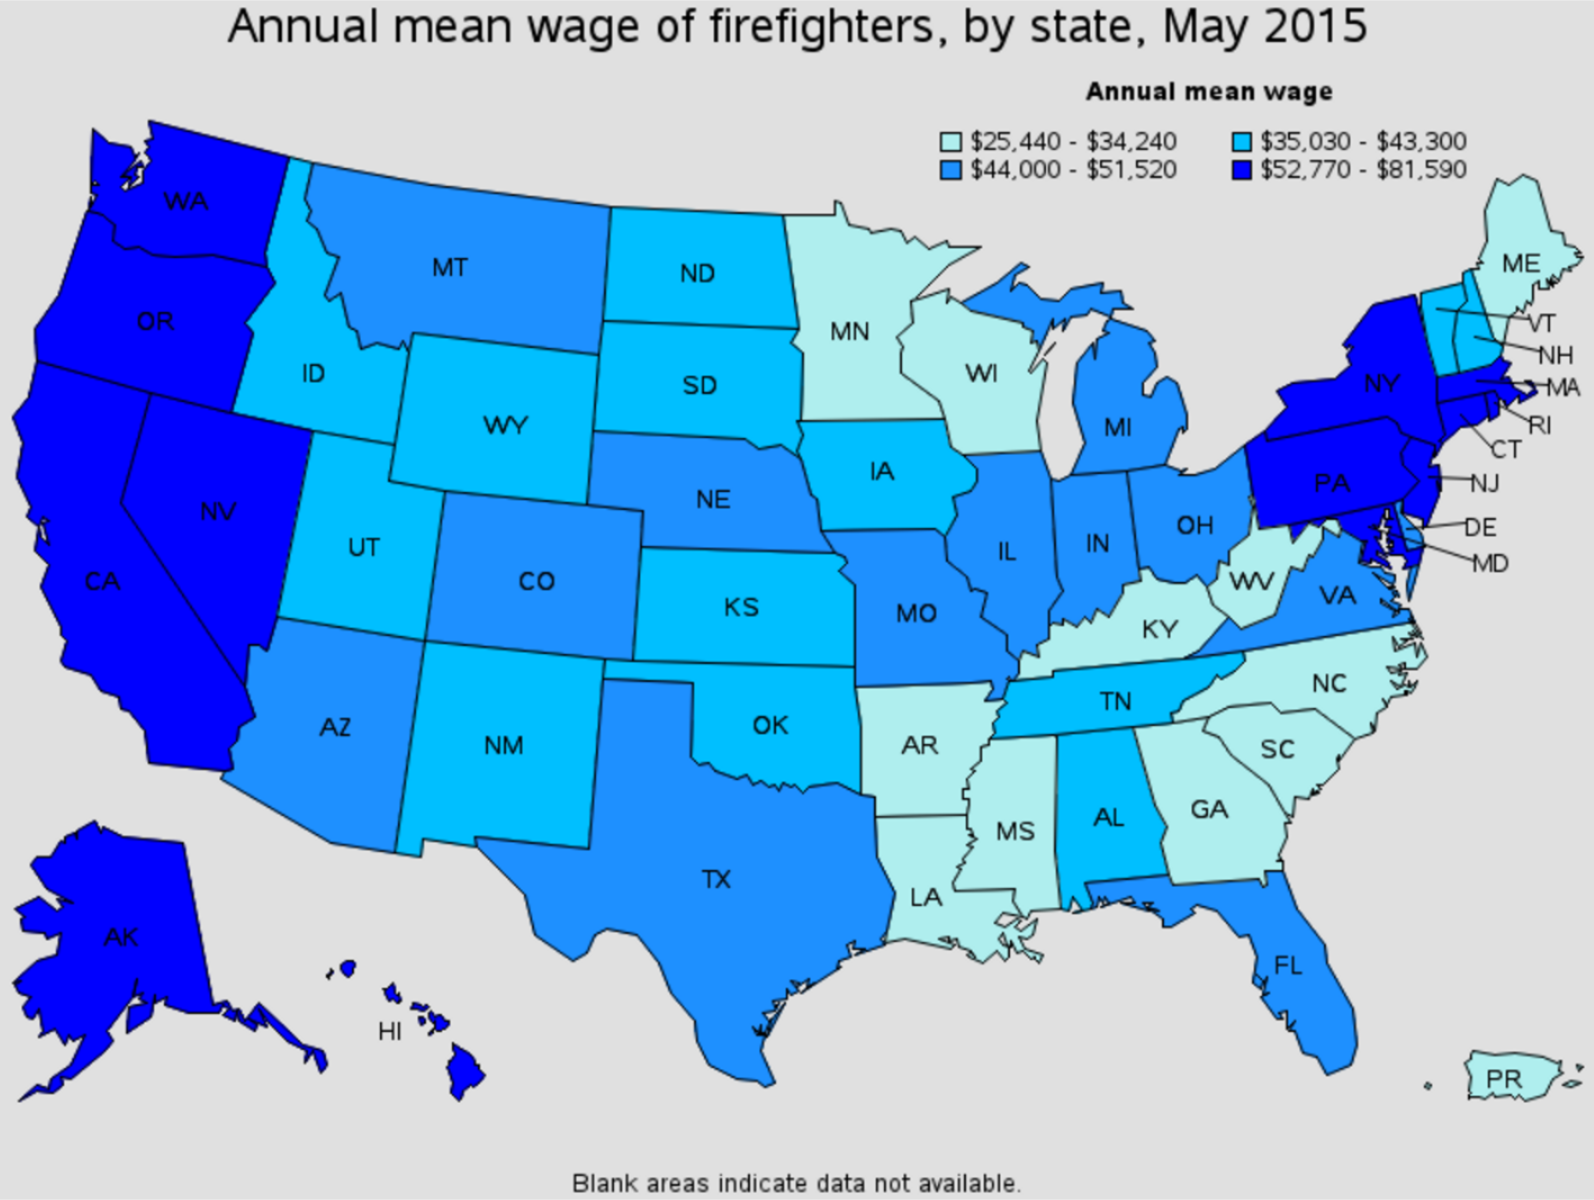 firefighter average salary by state Big Pine Key Florida